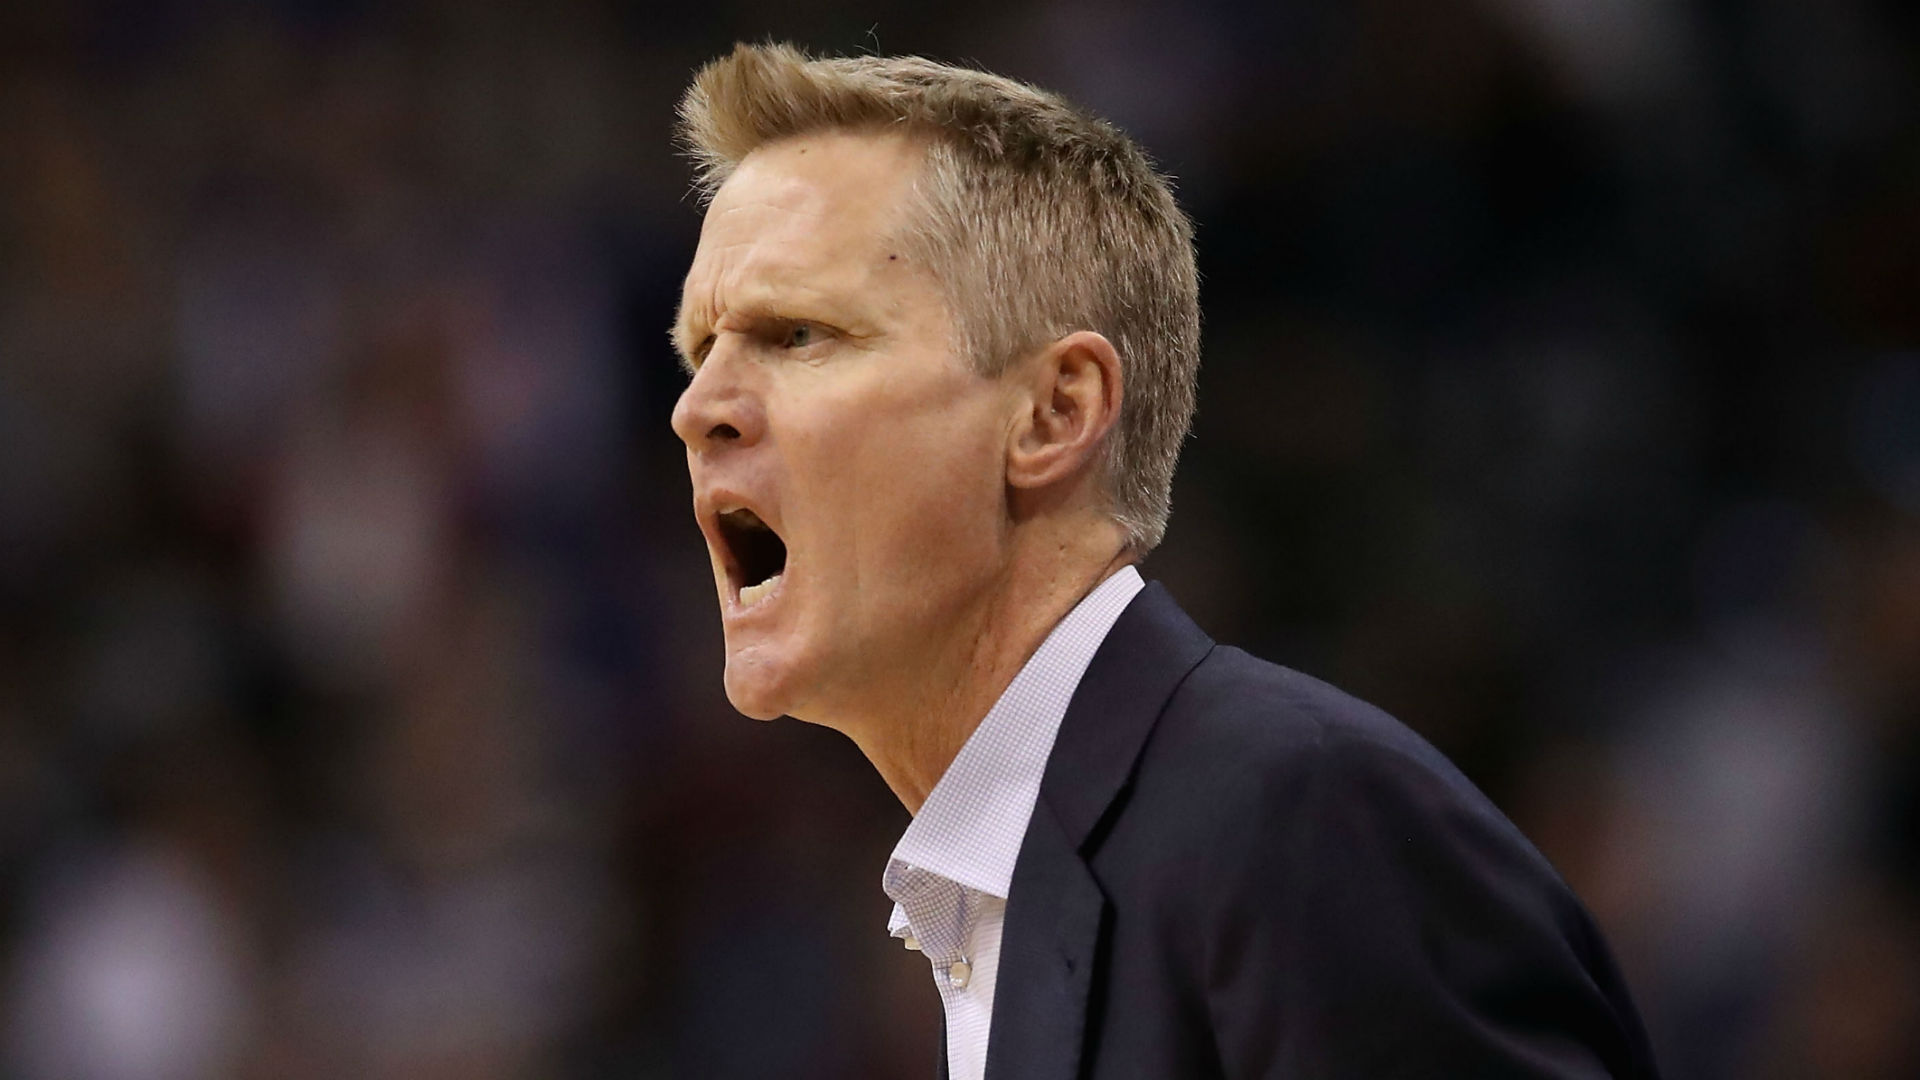 Steve Kerr ejected after going on a F-bomb spree, releases statement